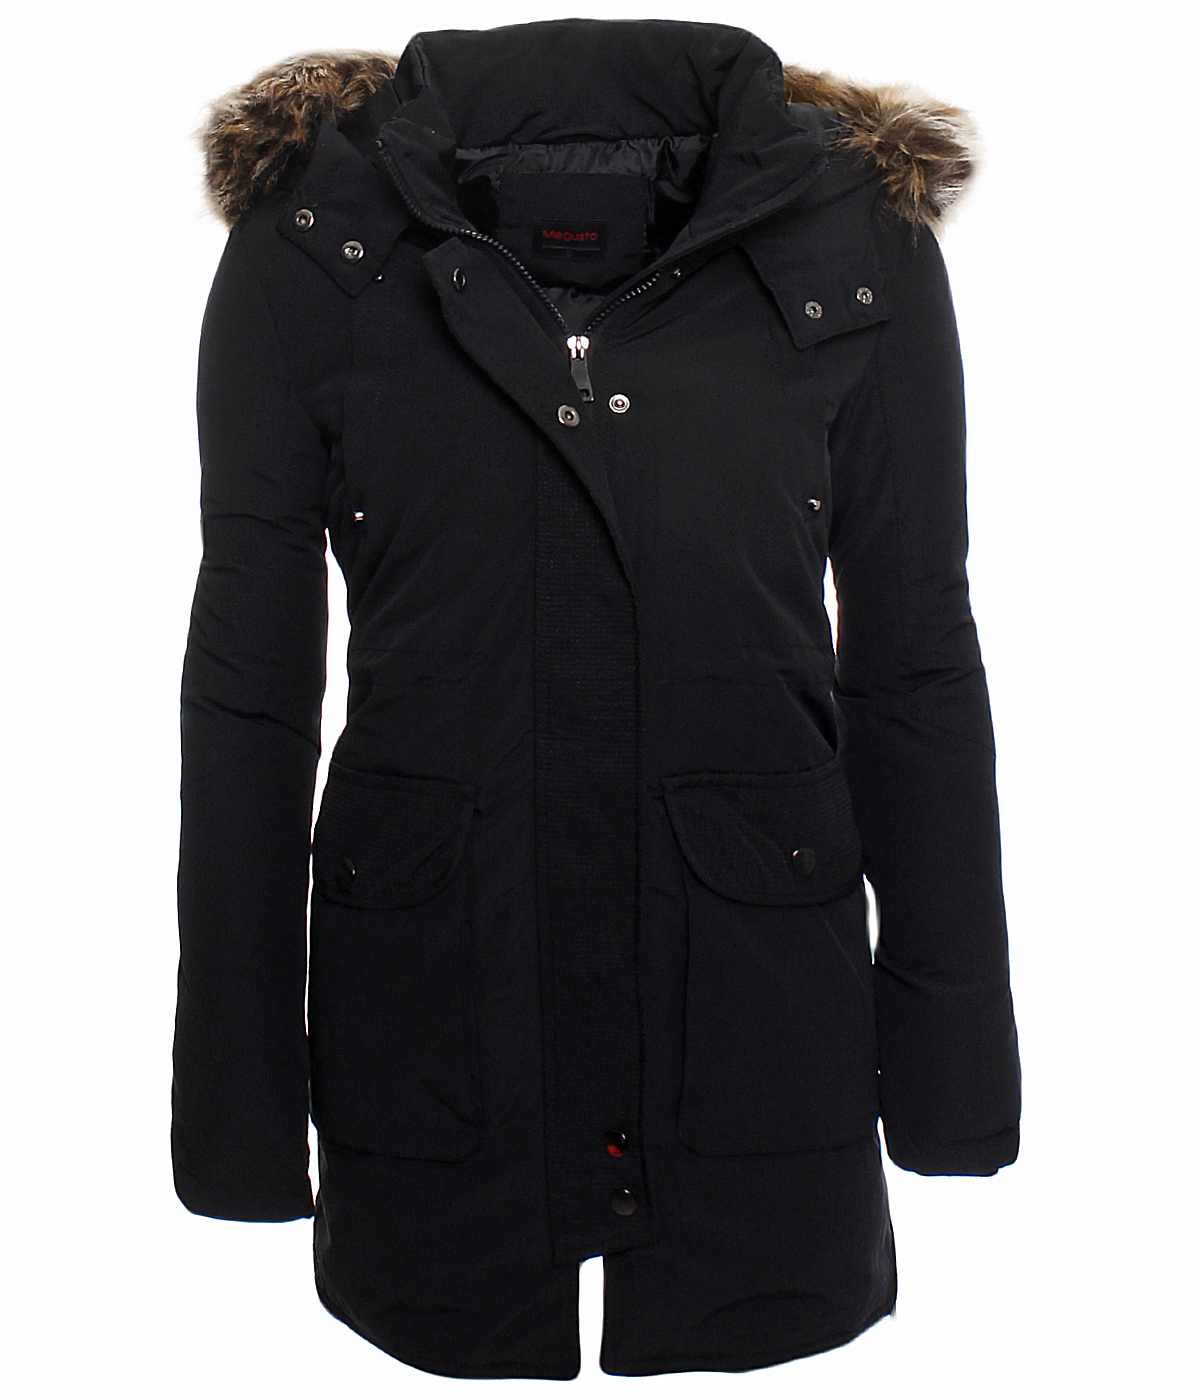 damen warmer wintermantel winter stepp mantel jacke lang parka. Black Bedroom Furniture Sets. Home Design Ideas